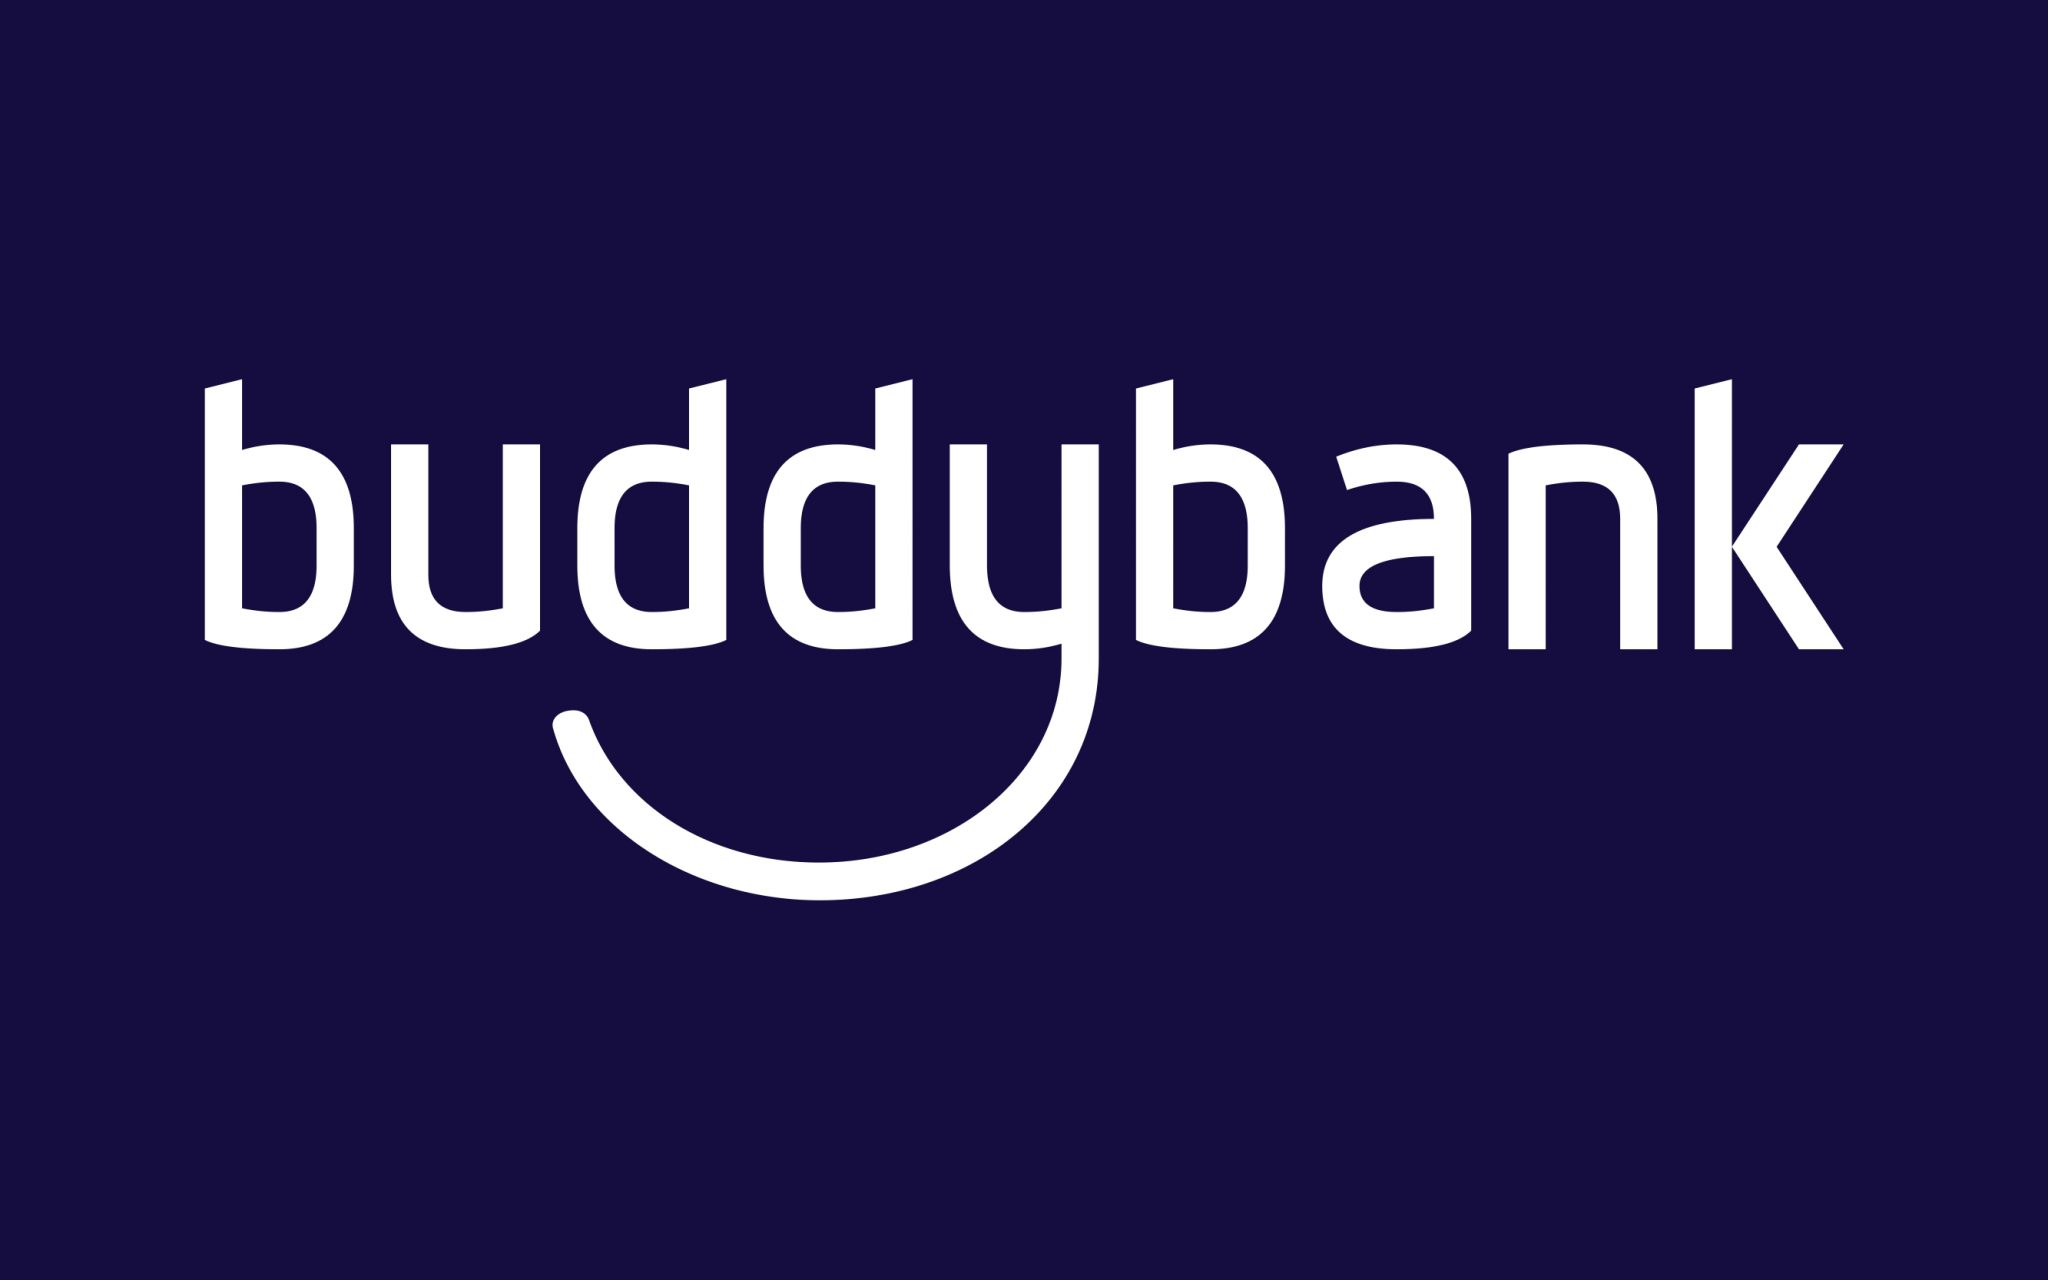 Buddybank wants to be friends